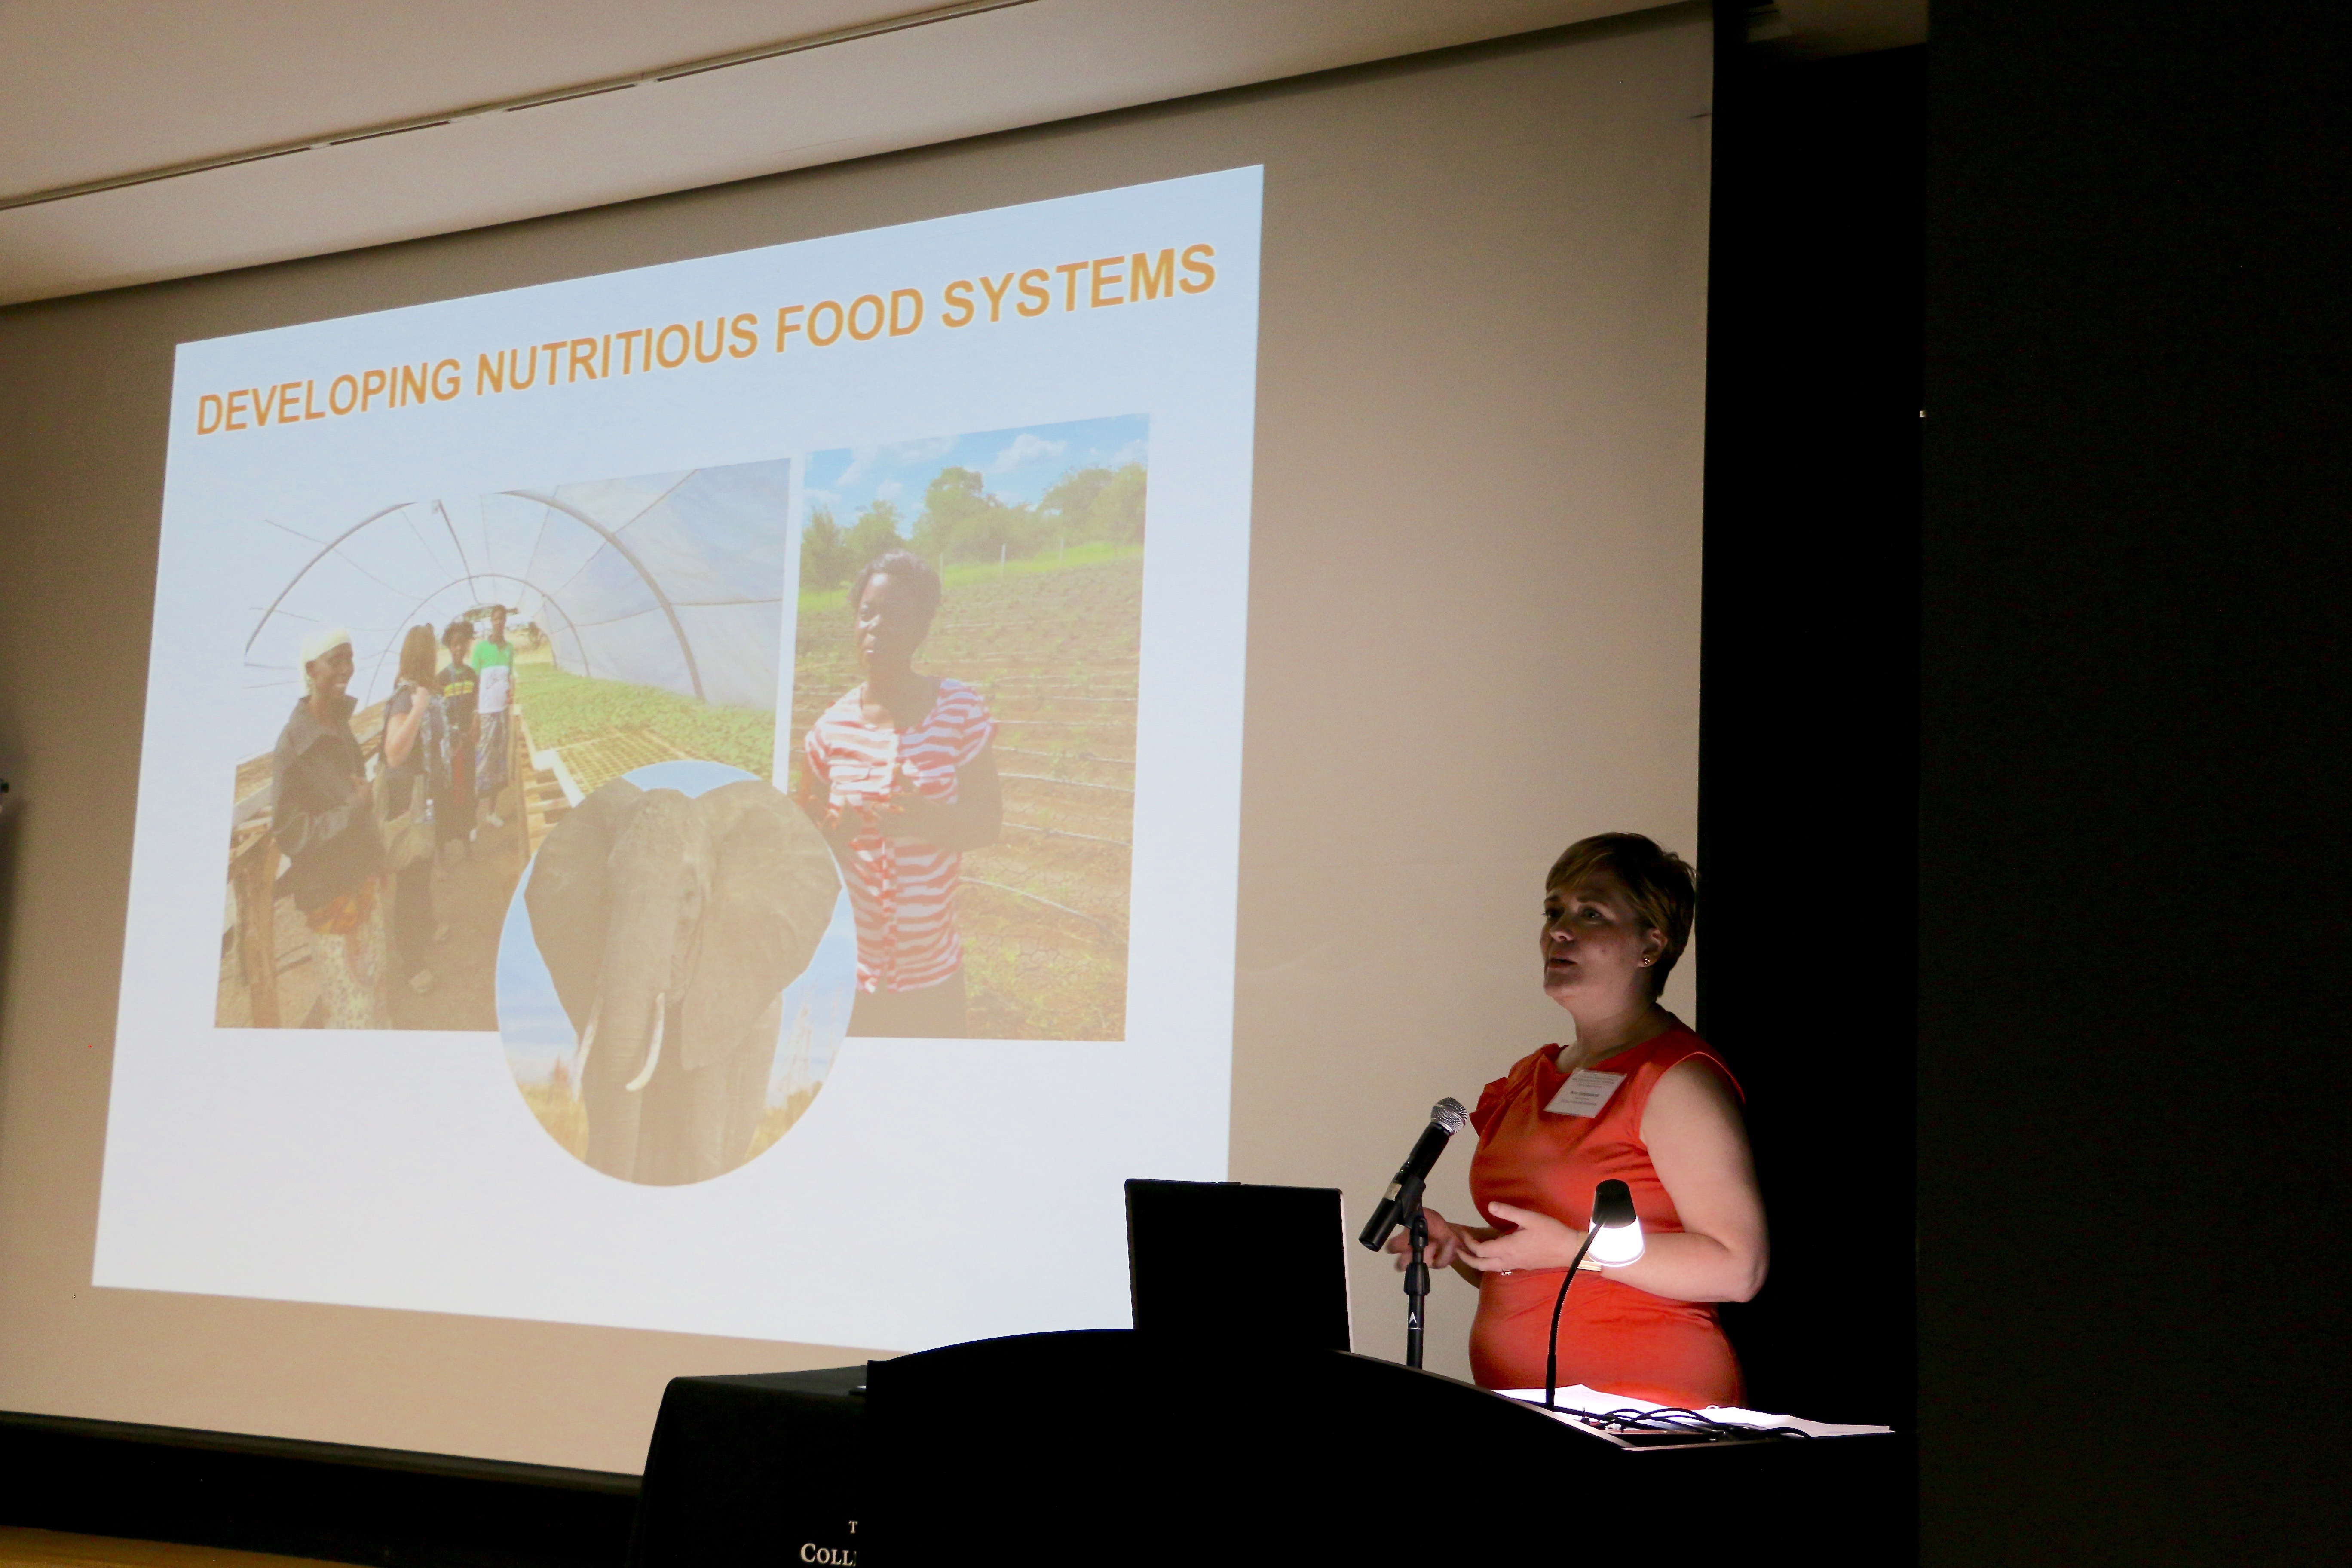 Keynote speaker Ann M. Steensland, deputy director of the Global Harvest Initiative, told students and faculty that successful solutions for feeding the world's hungry have to be created in concert with the farmers and community members on the ground in developing countries and in our own backyard.